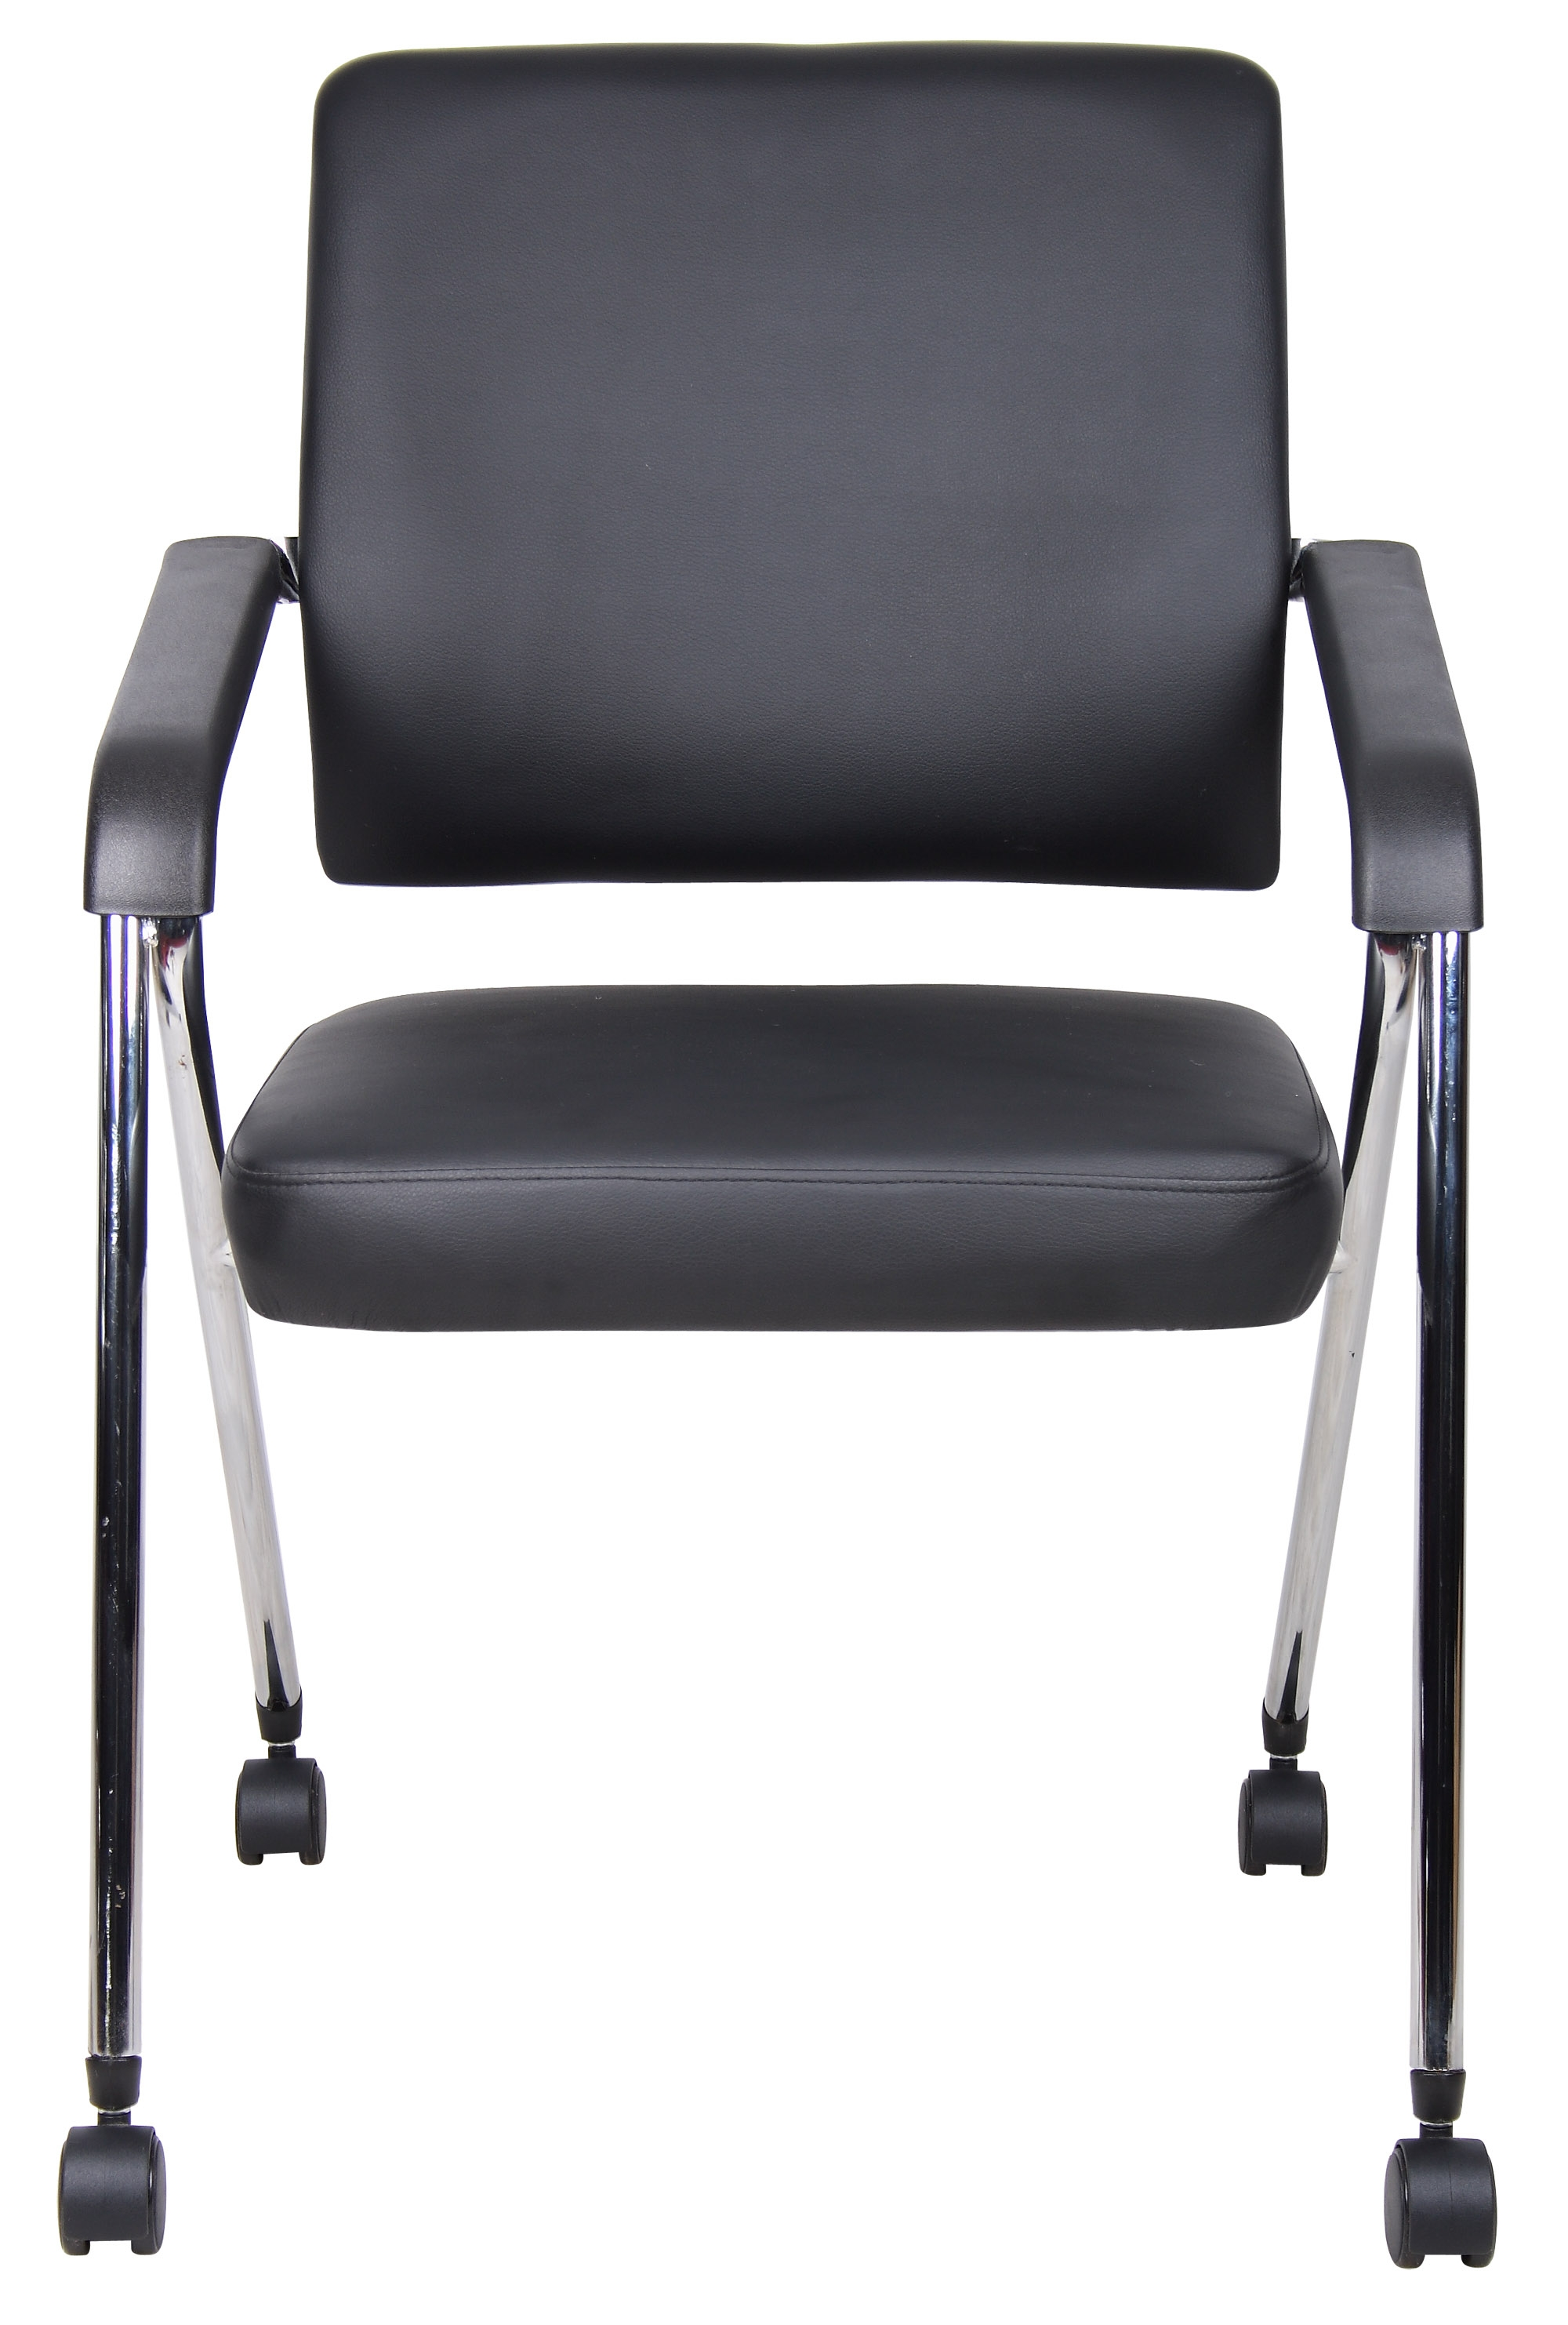 Boss Black Caressoft Plus Training Chair With Chrome Frame